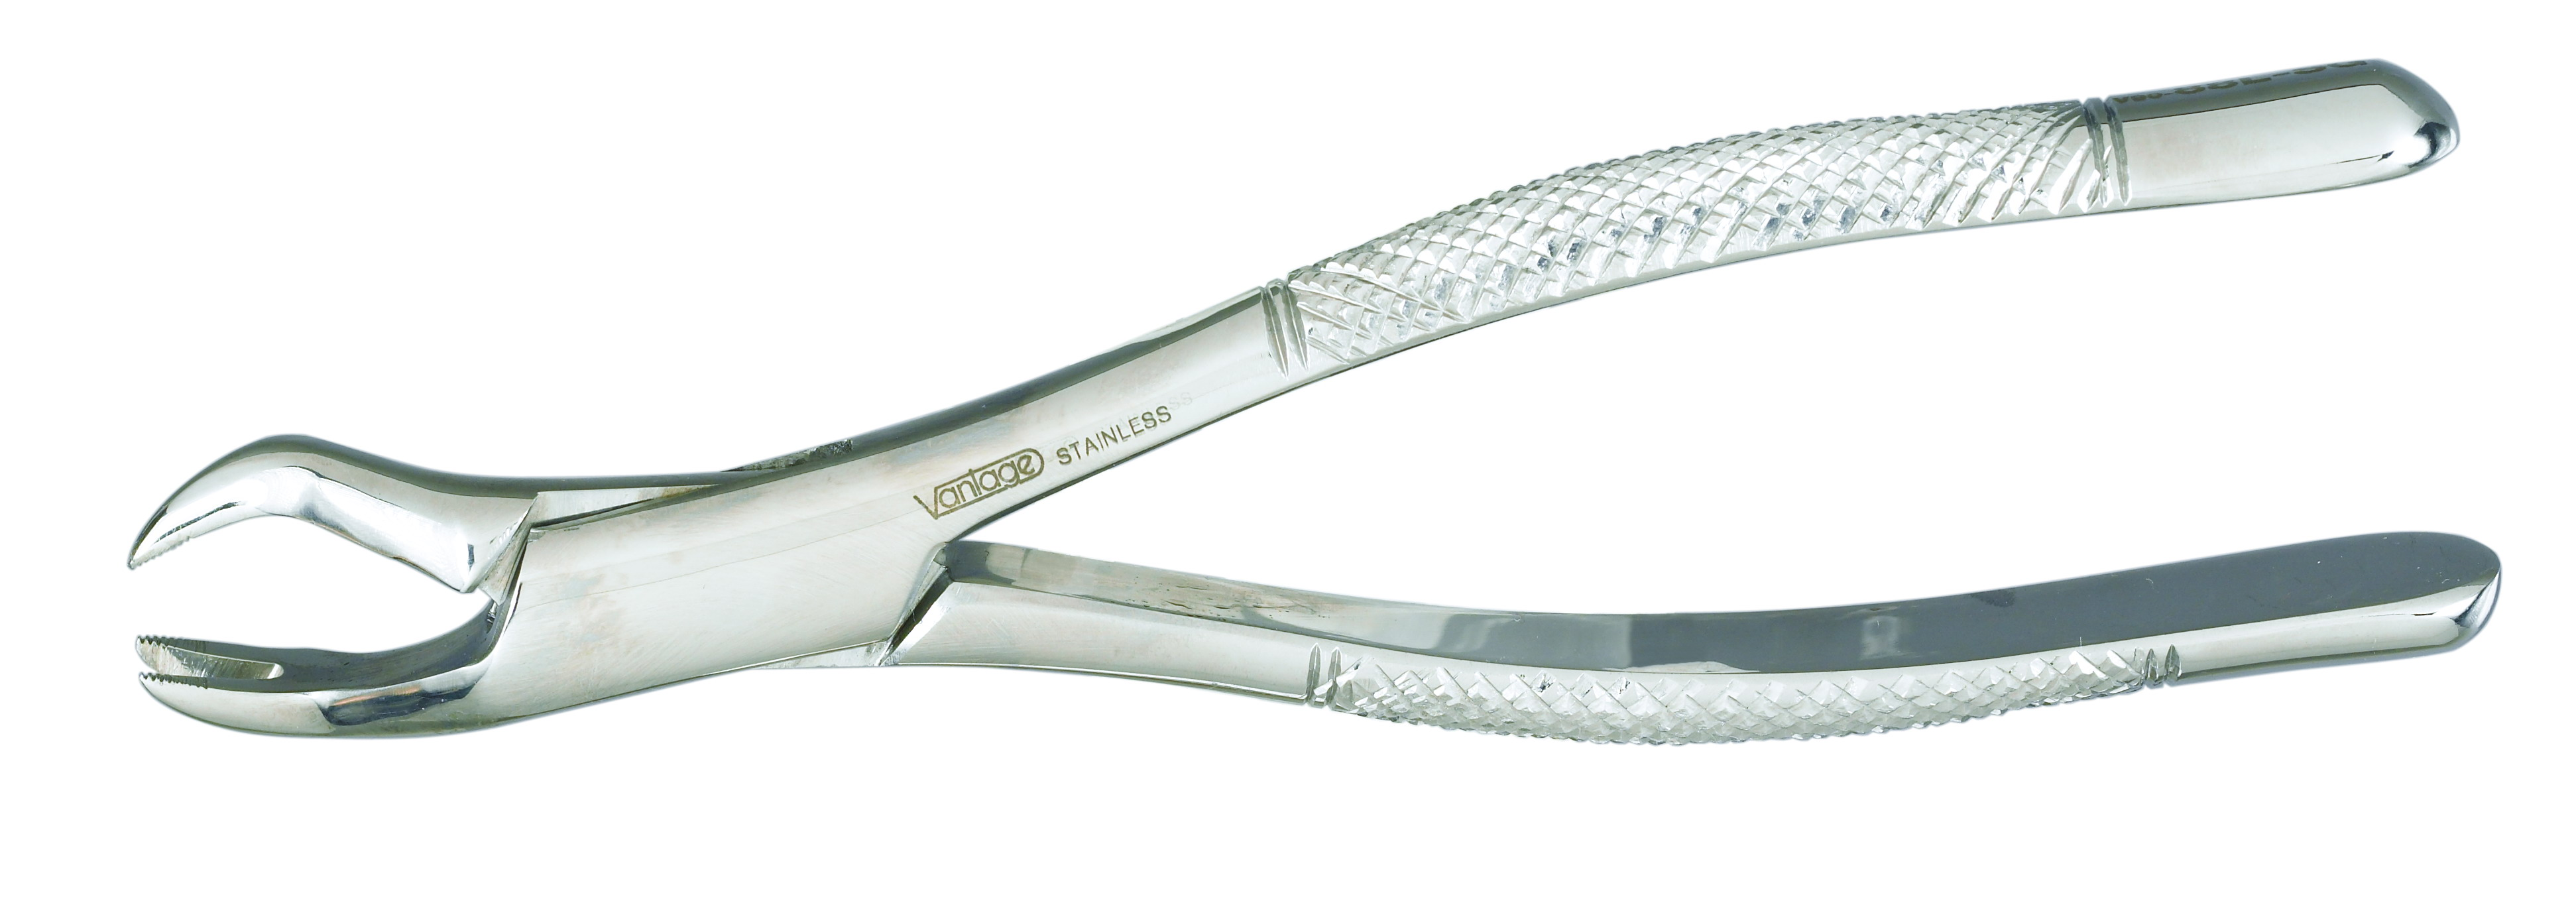 dental extracting forceps 88l - photo #38